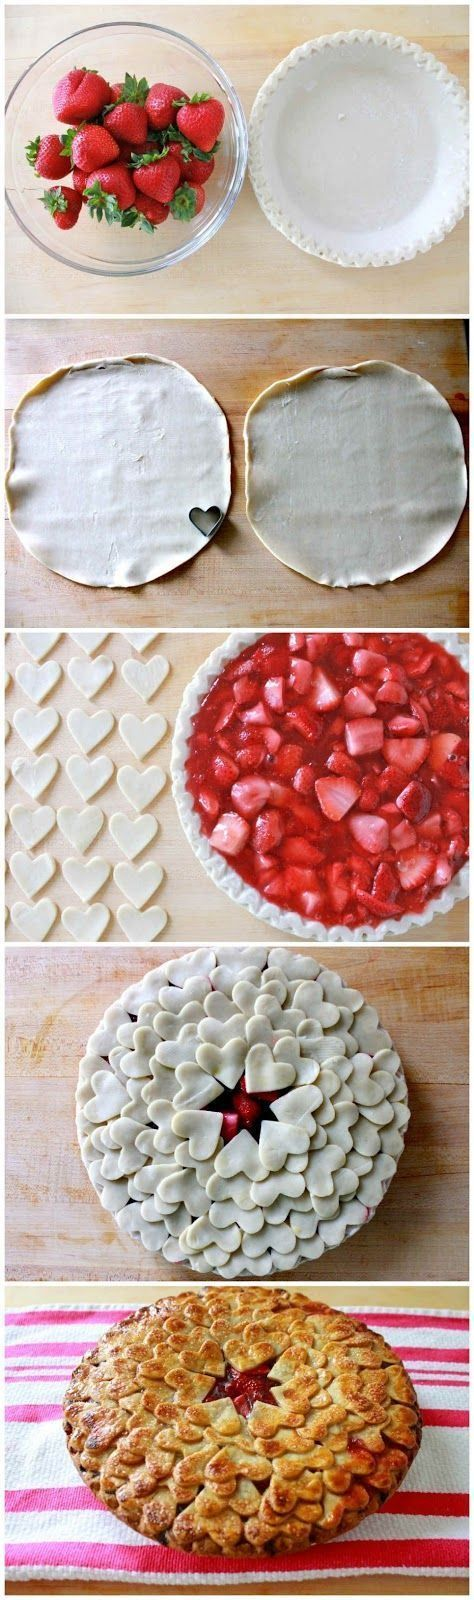 Recipe: Strawberry Heart Pie - Miss Buttercup